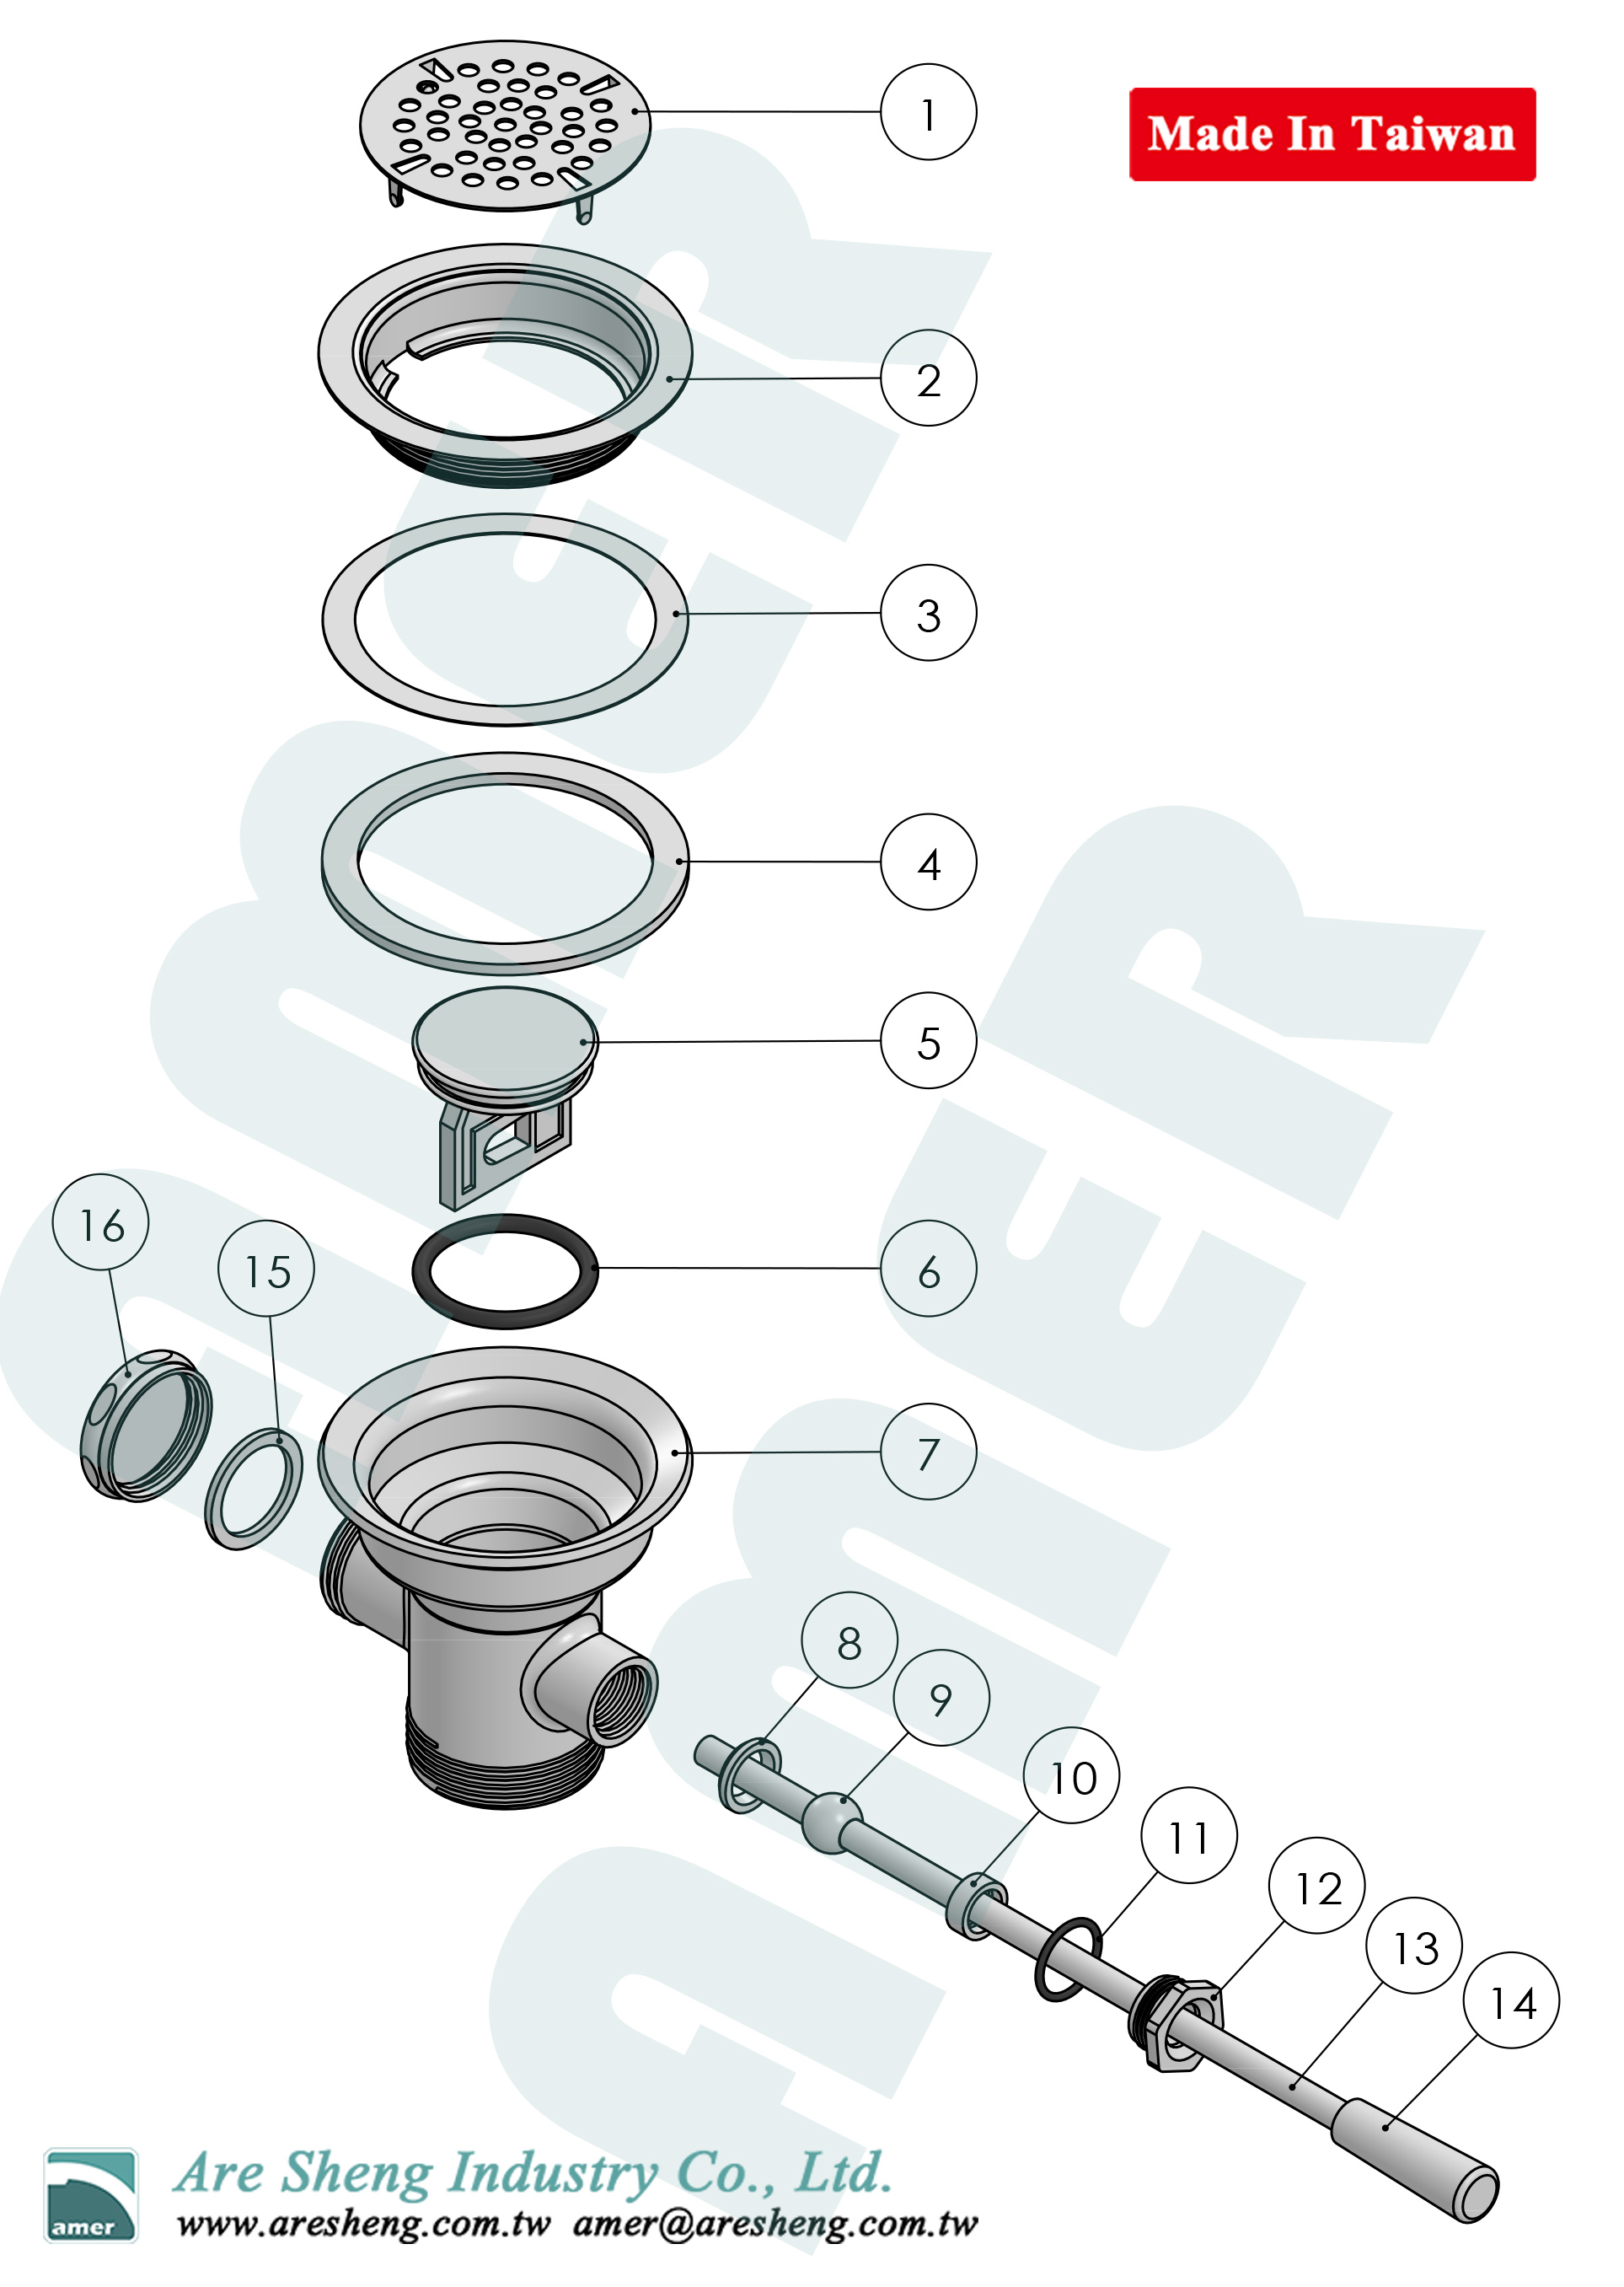 waste valve lever handle explosion drawing